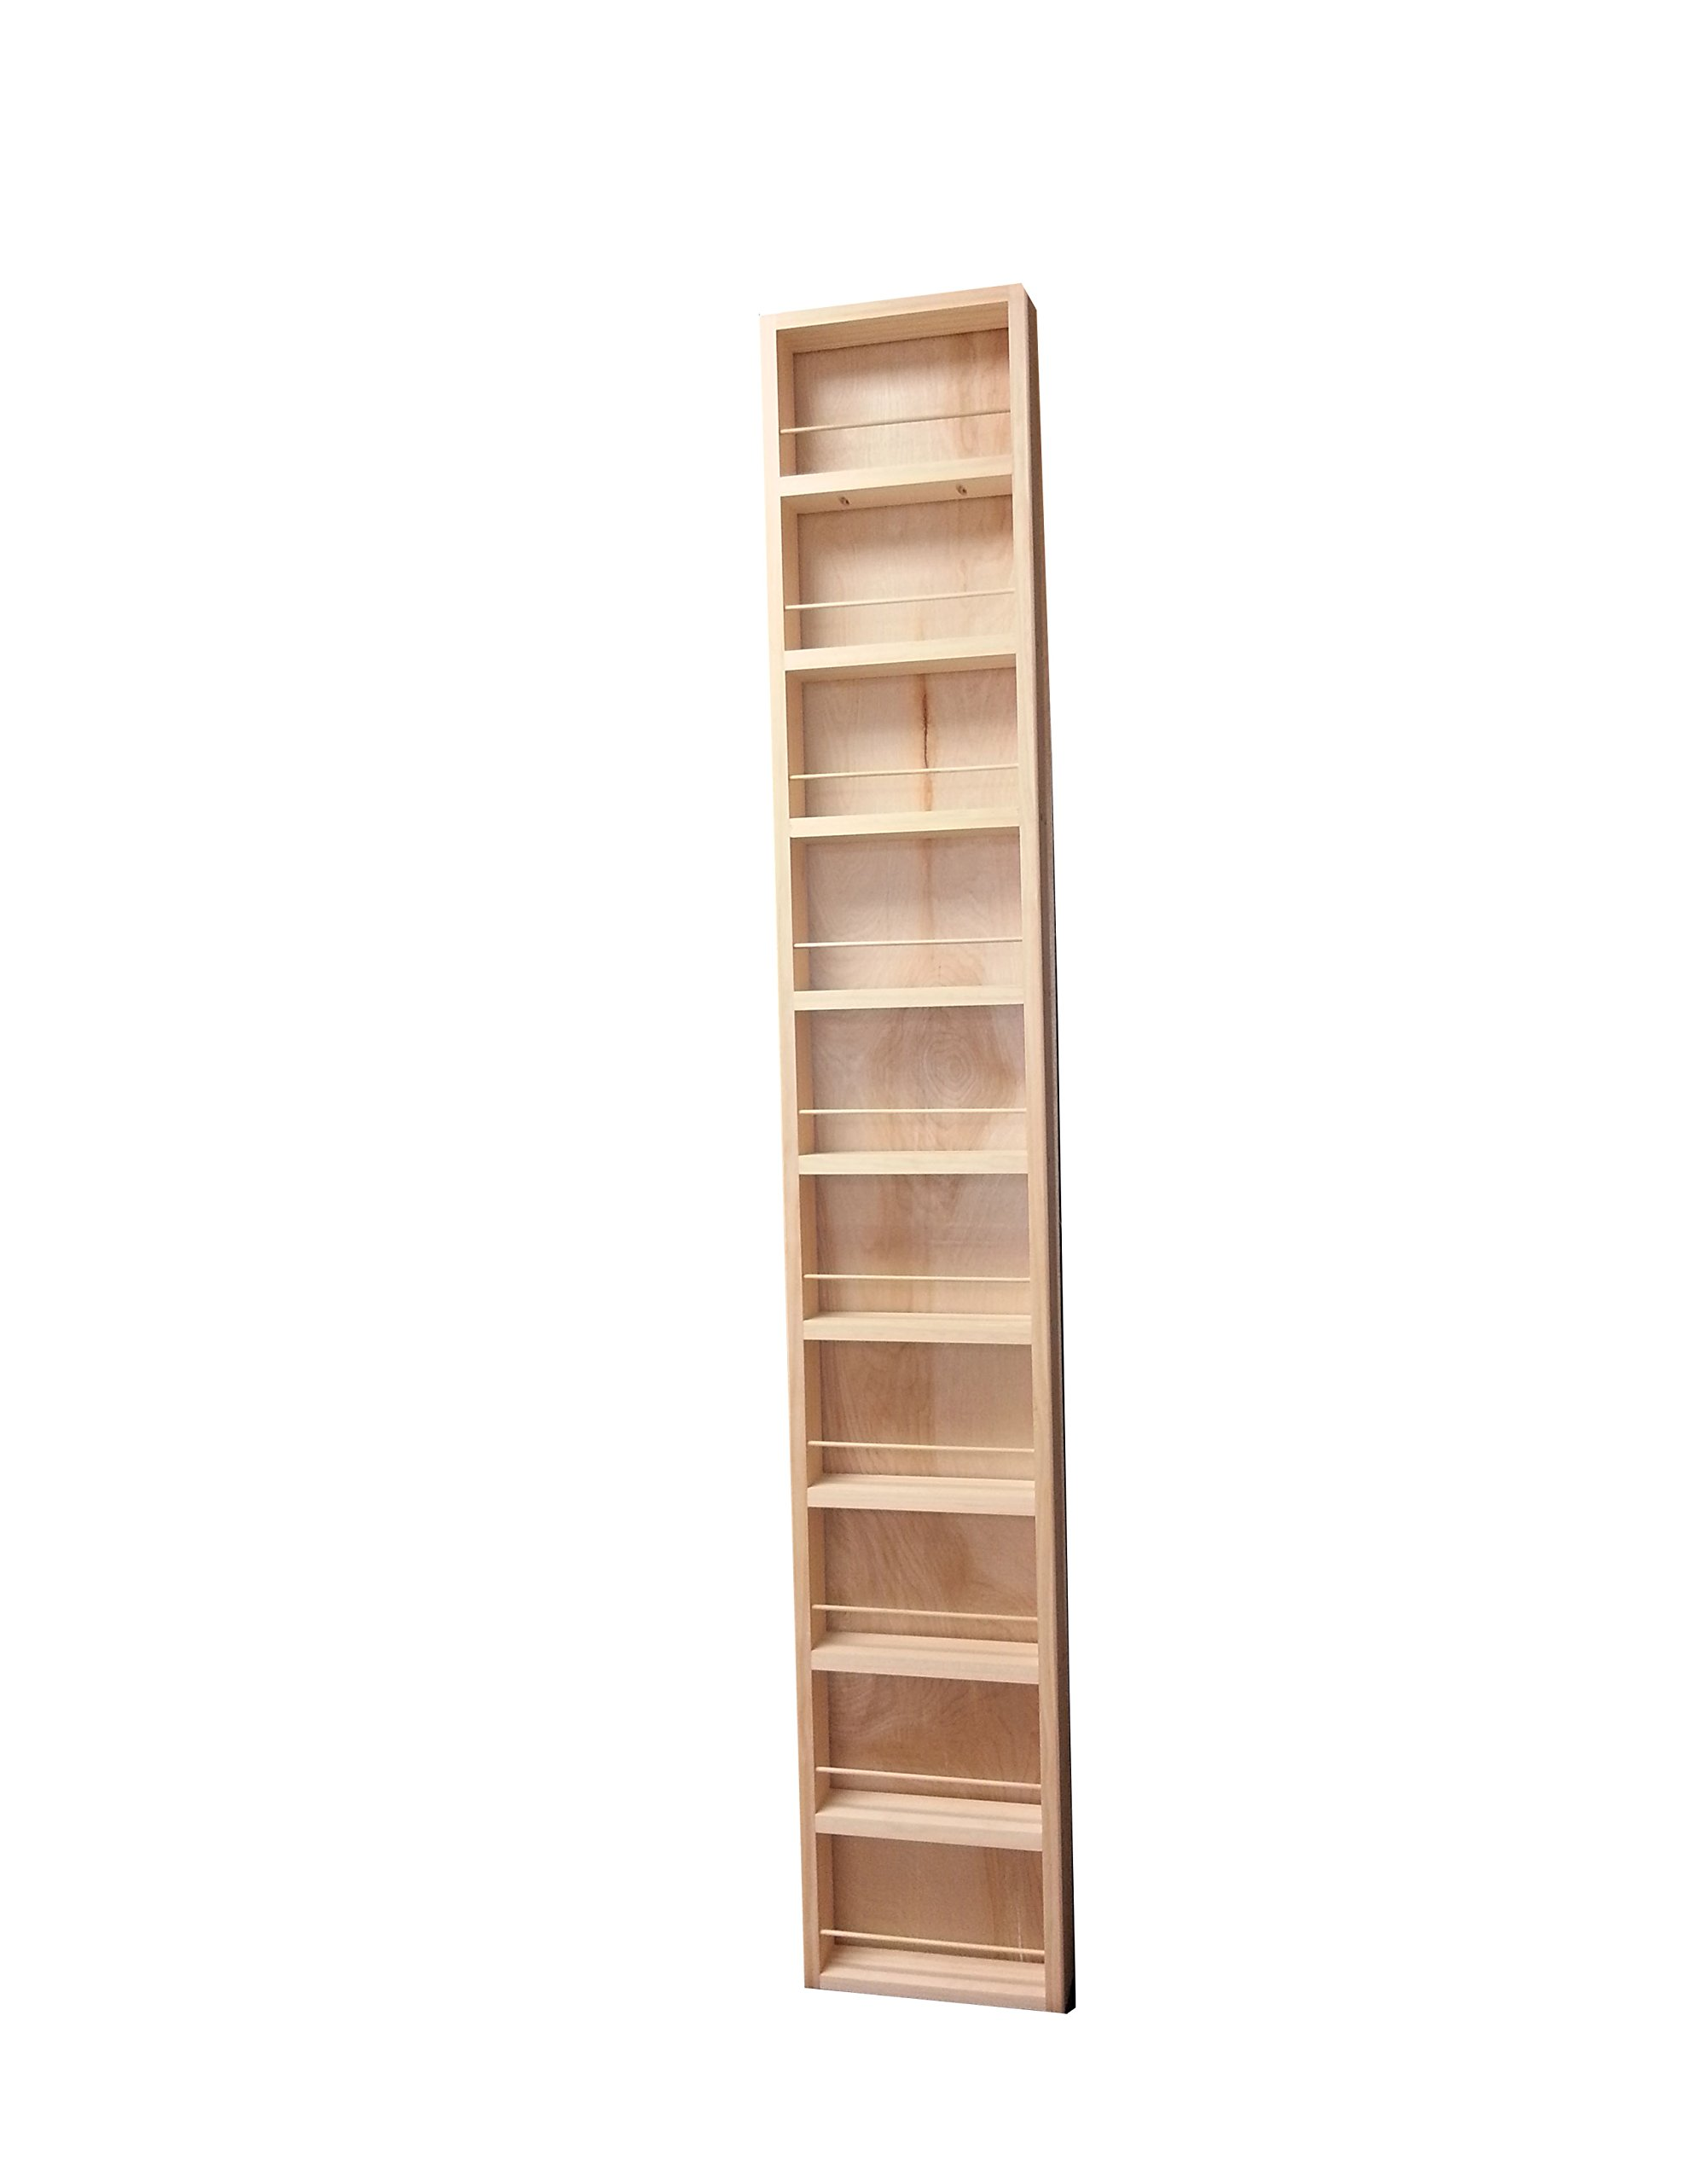 Wood Cabinets Direct Fulton Premium on The Wall Spice Rack, 69'' Height x 11'' Width x 3.5'' Deep